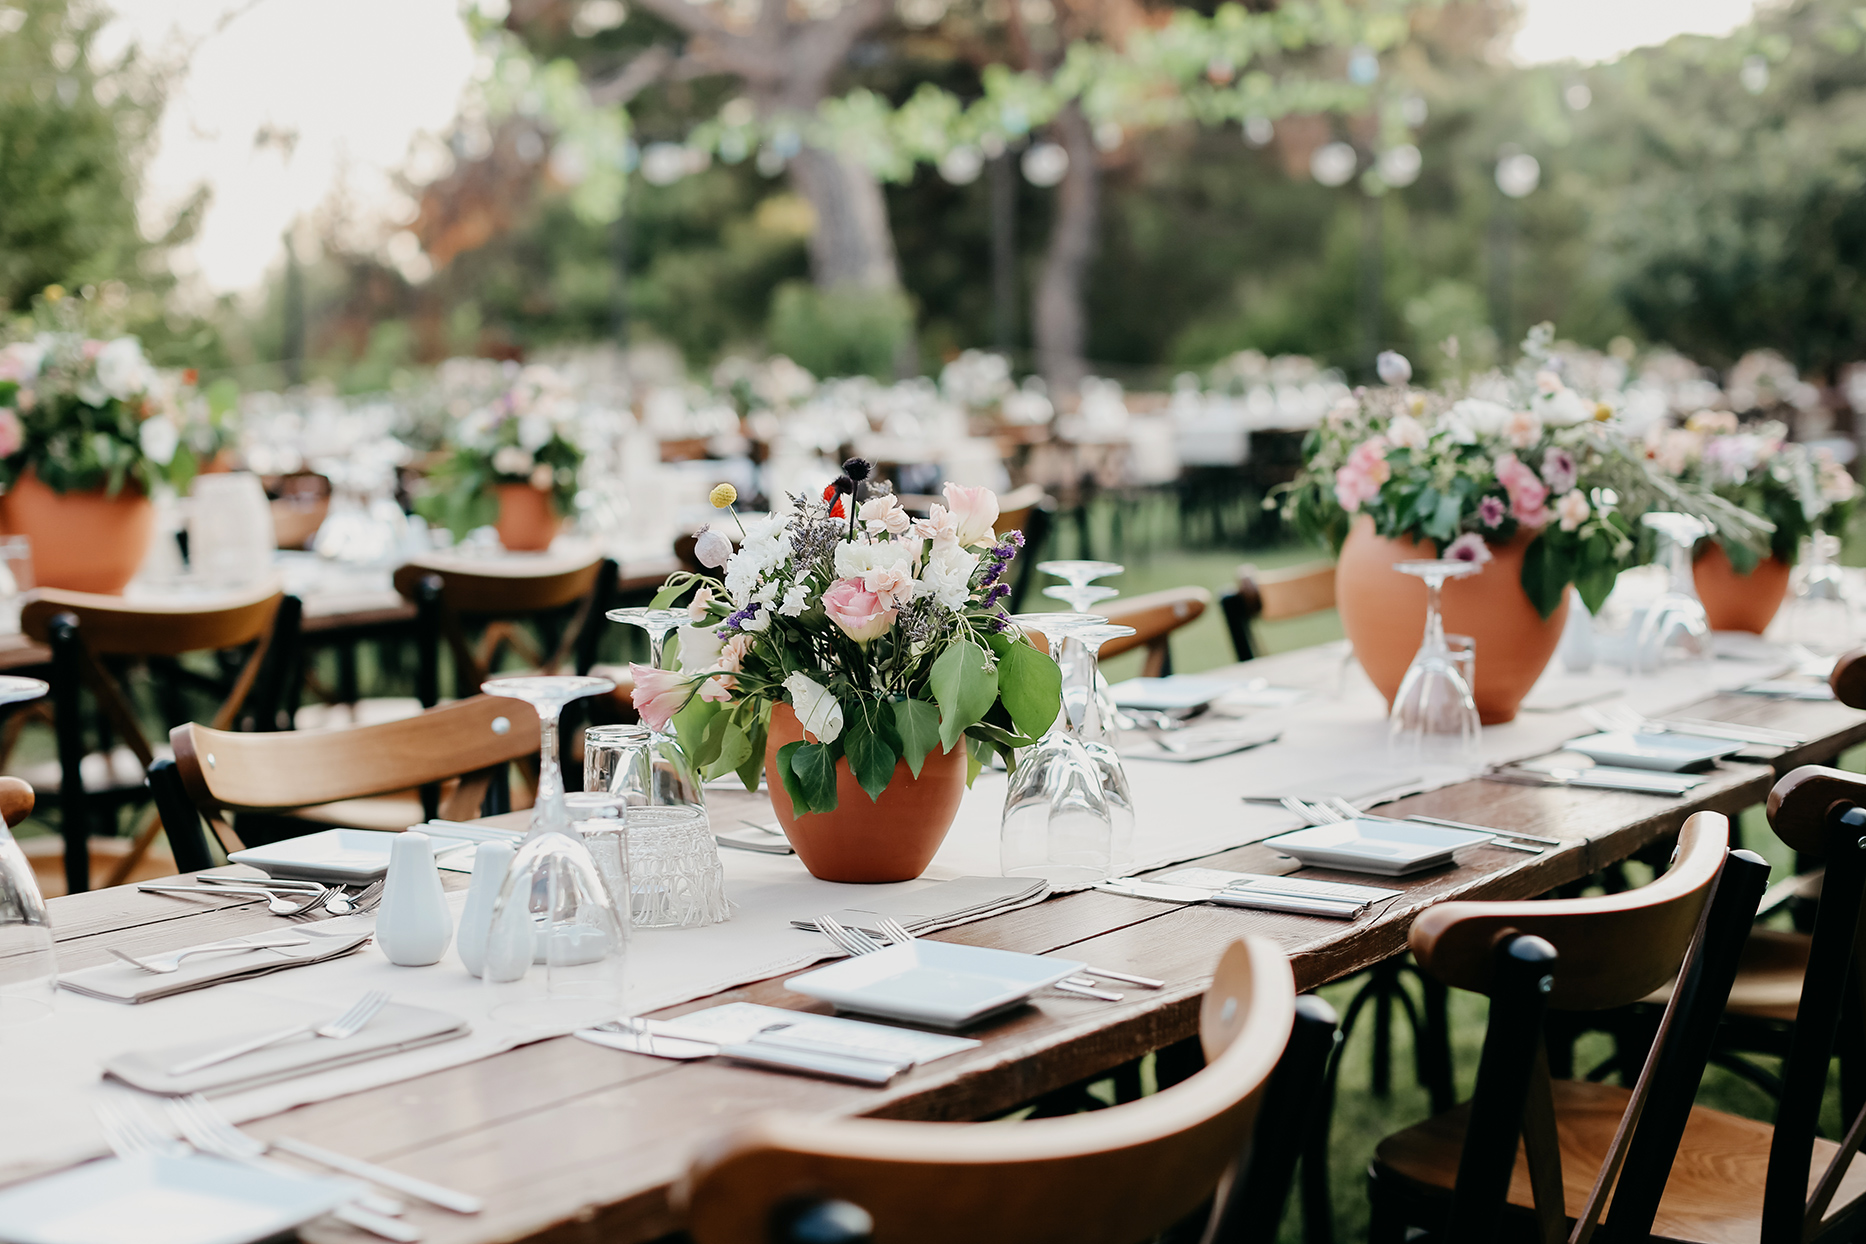 table settings for an outdoor event or reception